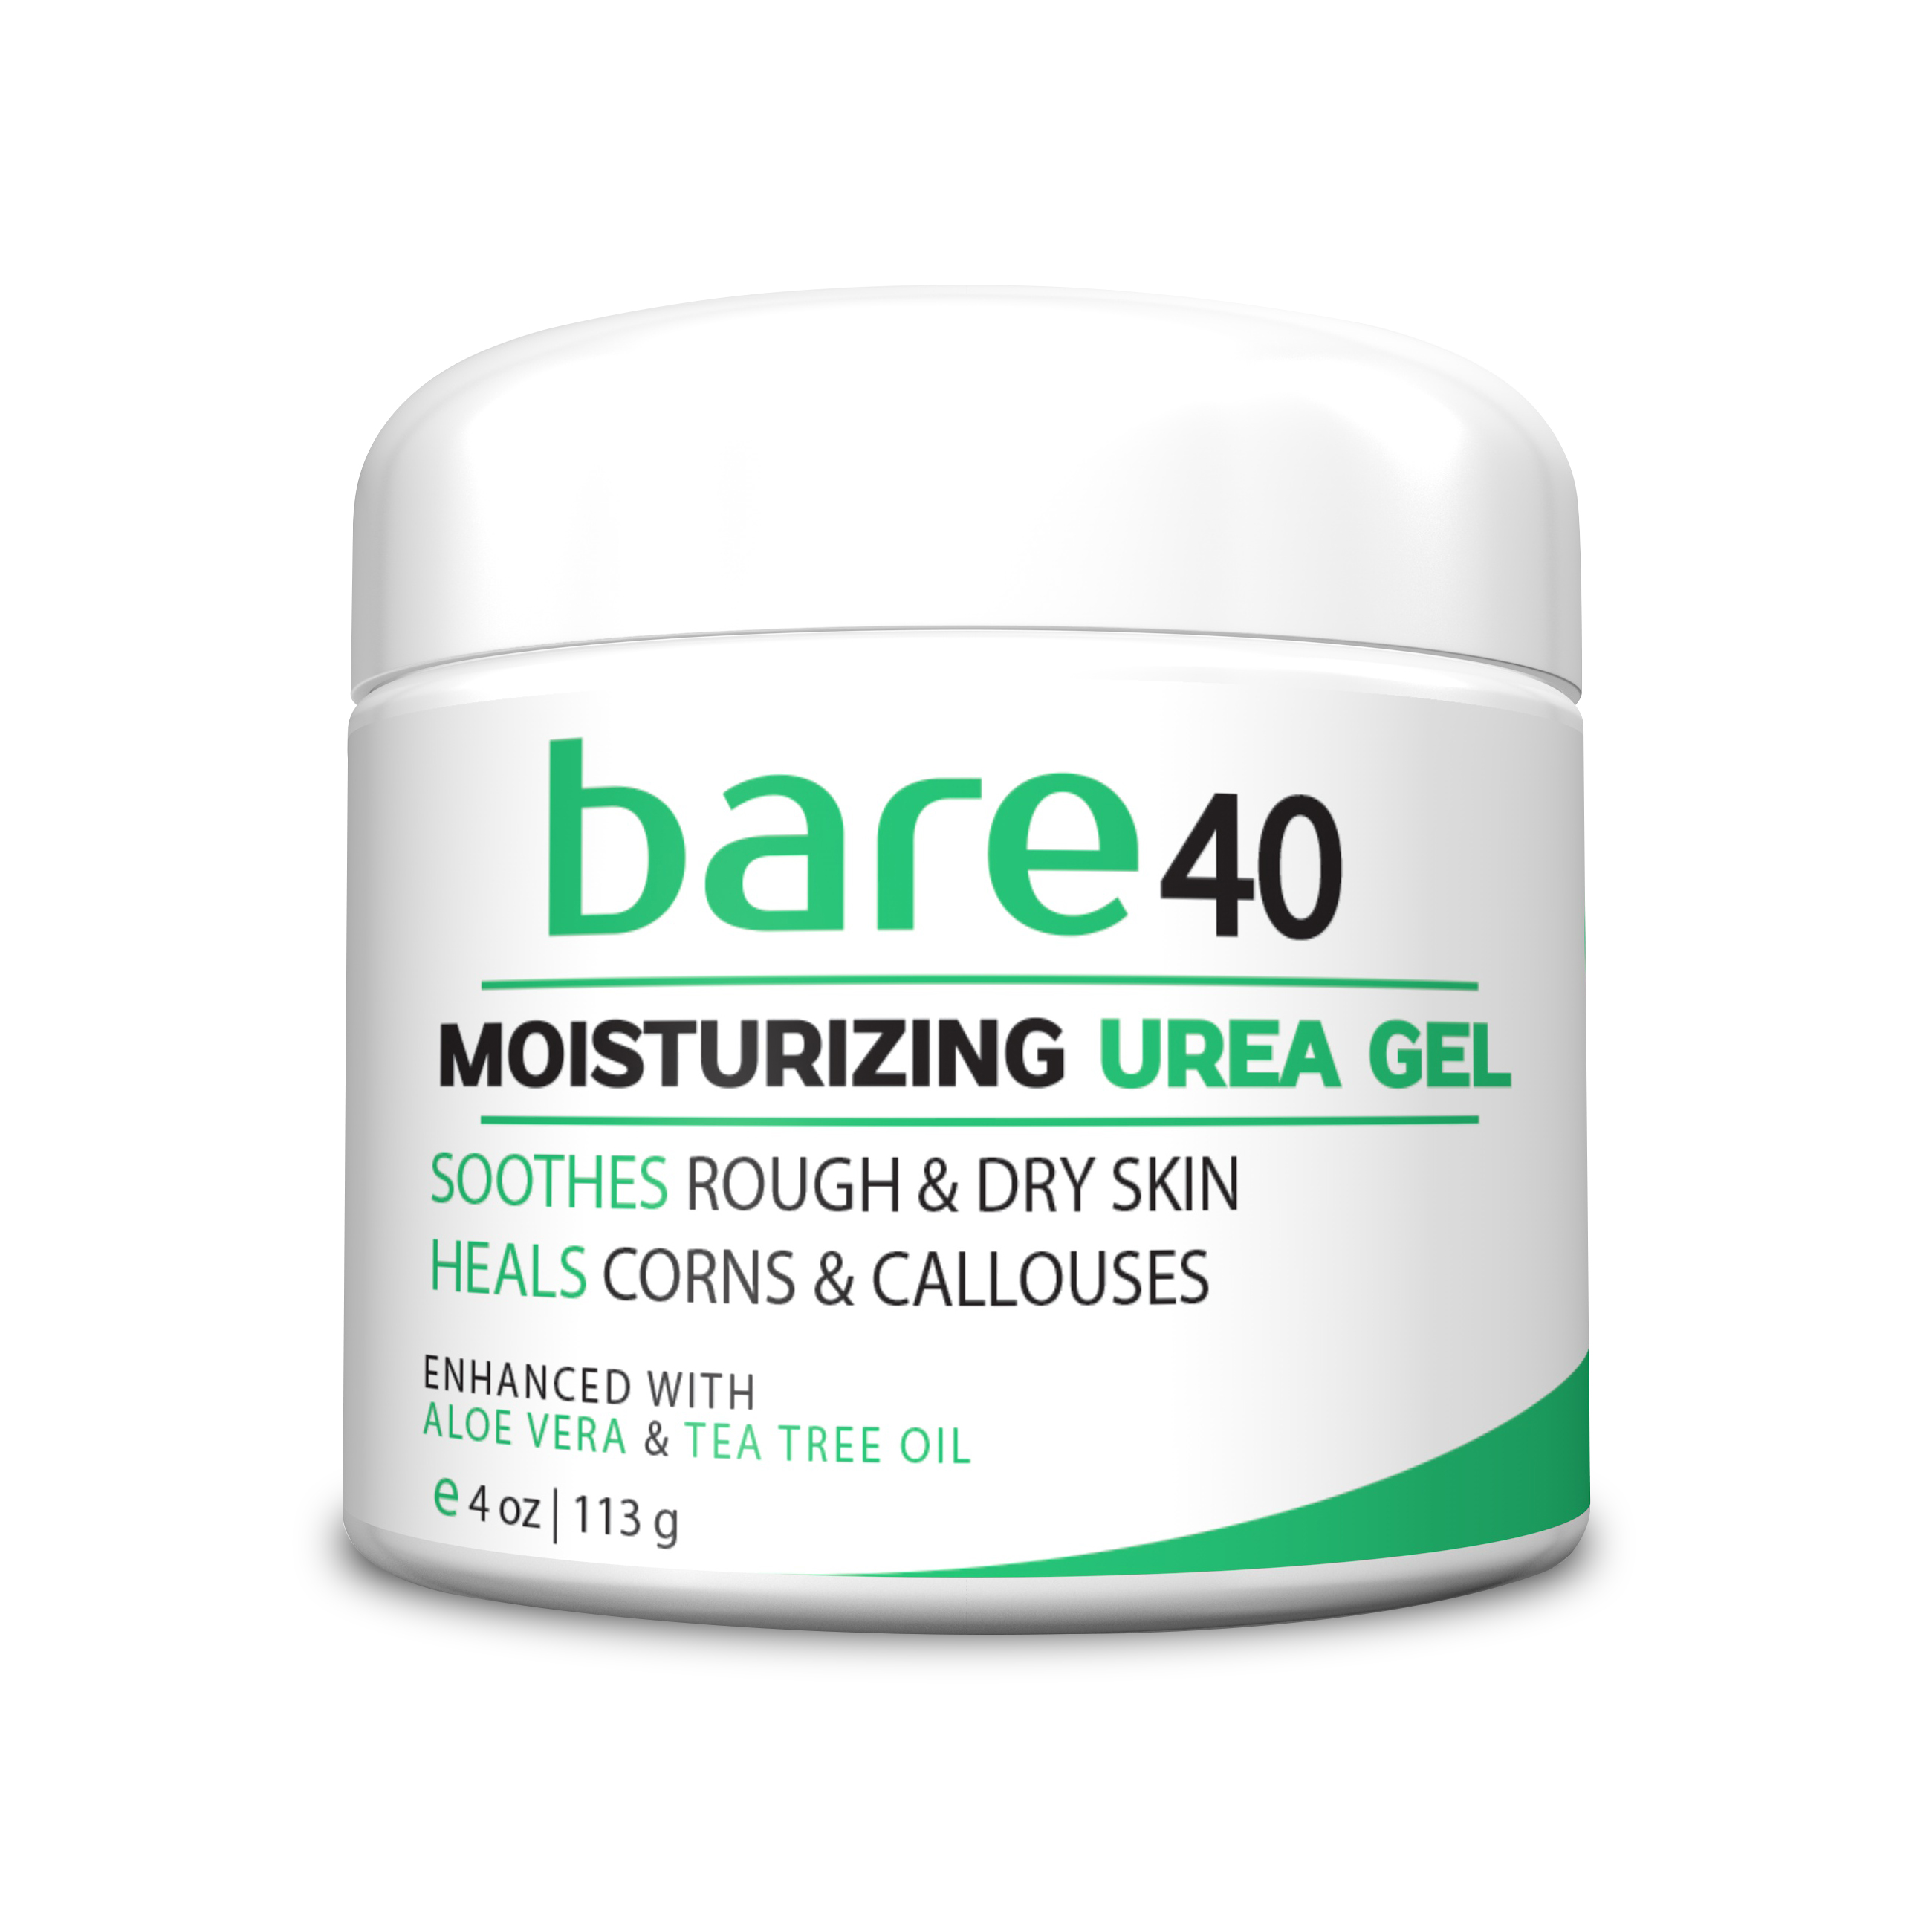 Bare Urea 40% Percent Cream/Gel for Hands, Feet, Elbows and Knees - Corn & Callus Remover - Skin Exfoliator & Moisturizer - Repairs Thick, Callused, Dead and Dry Skin